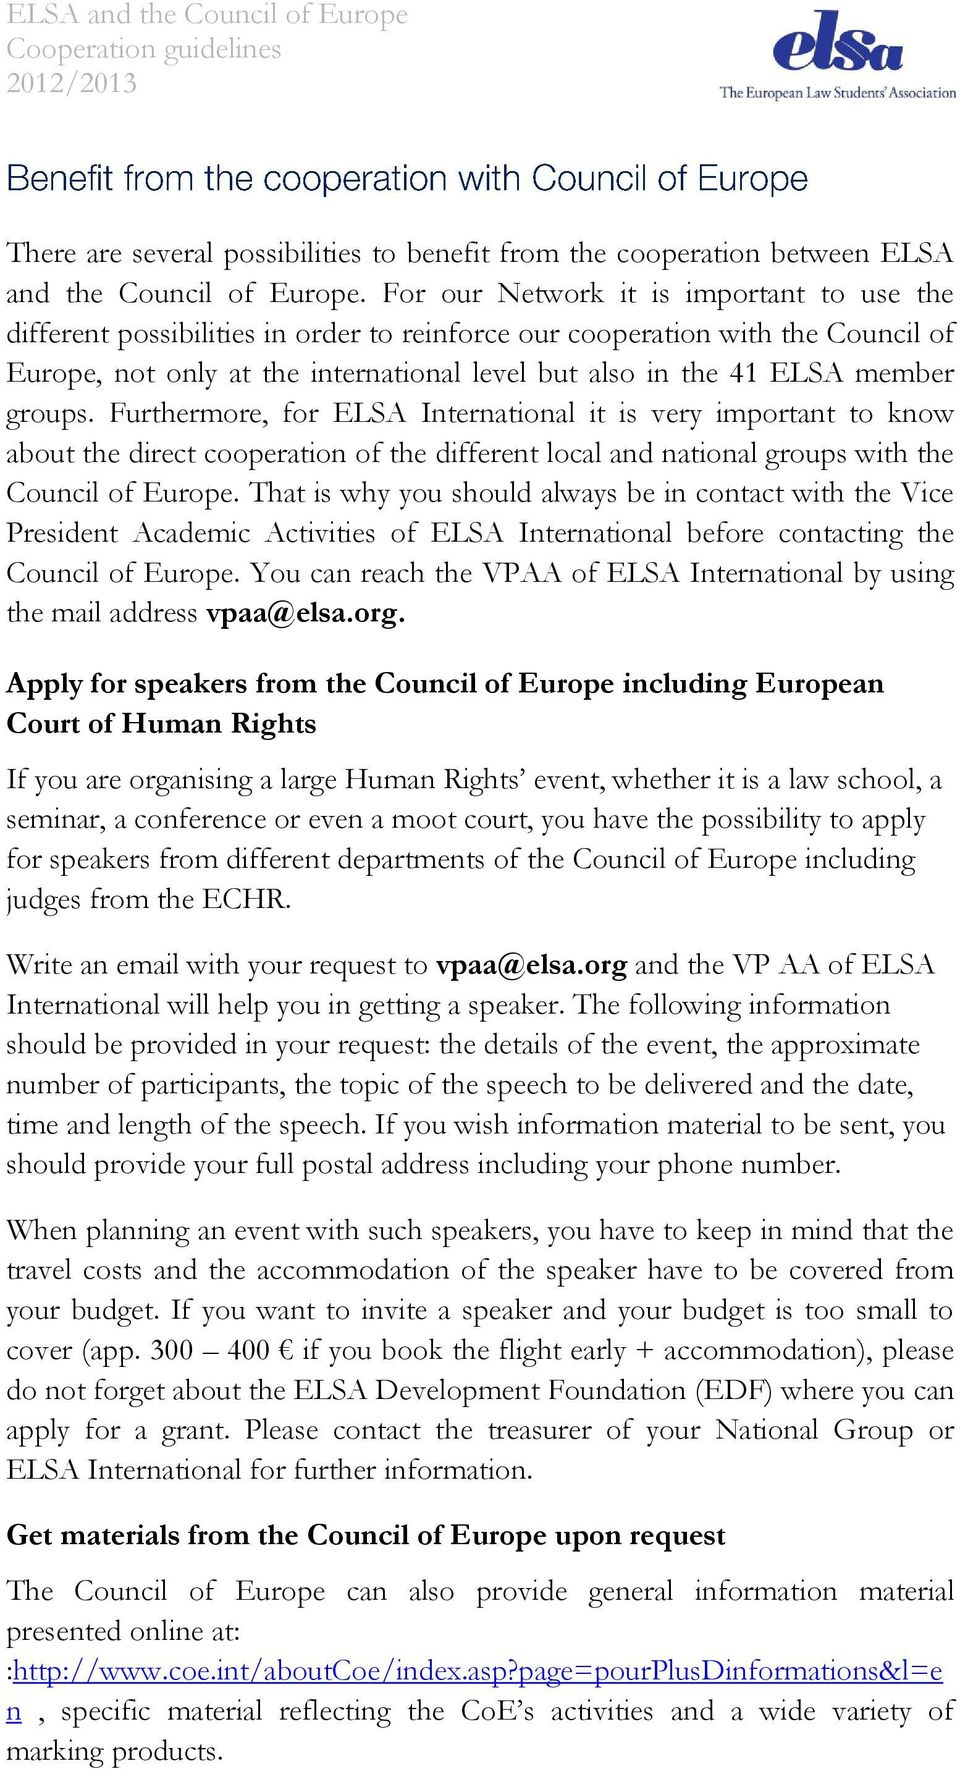 groups. Furthermore, for ELSA International it is very important to know about the direct cooperation of the different local and national groups with the Council of Europe.